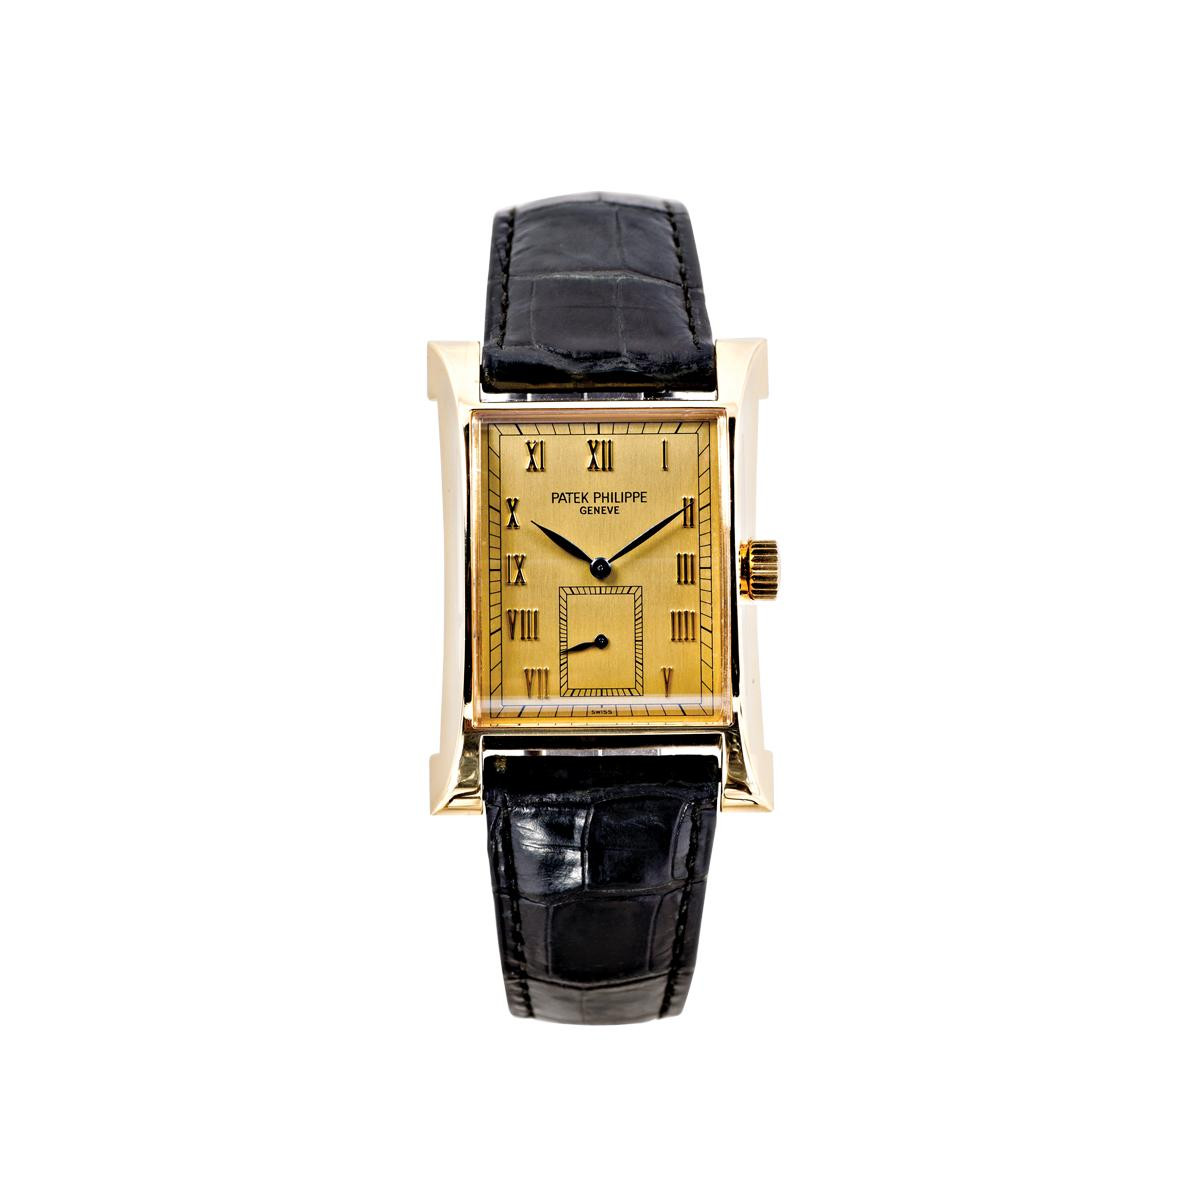 Preowned 18K Gold Patek Philippe Pagoda